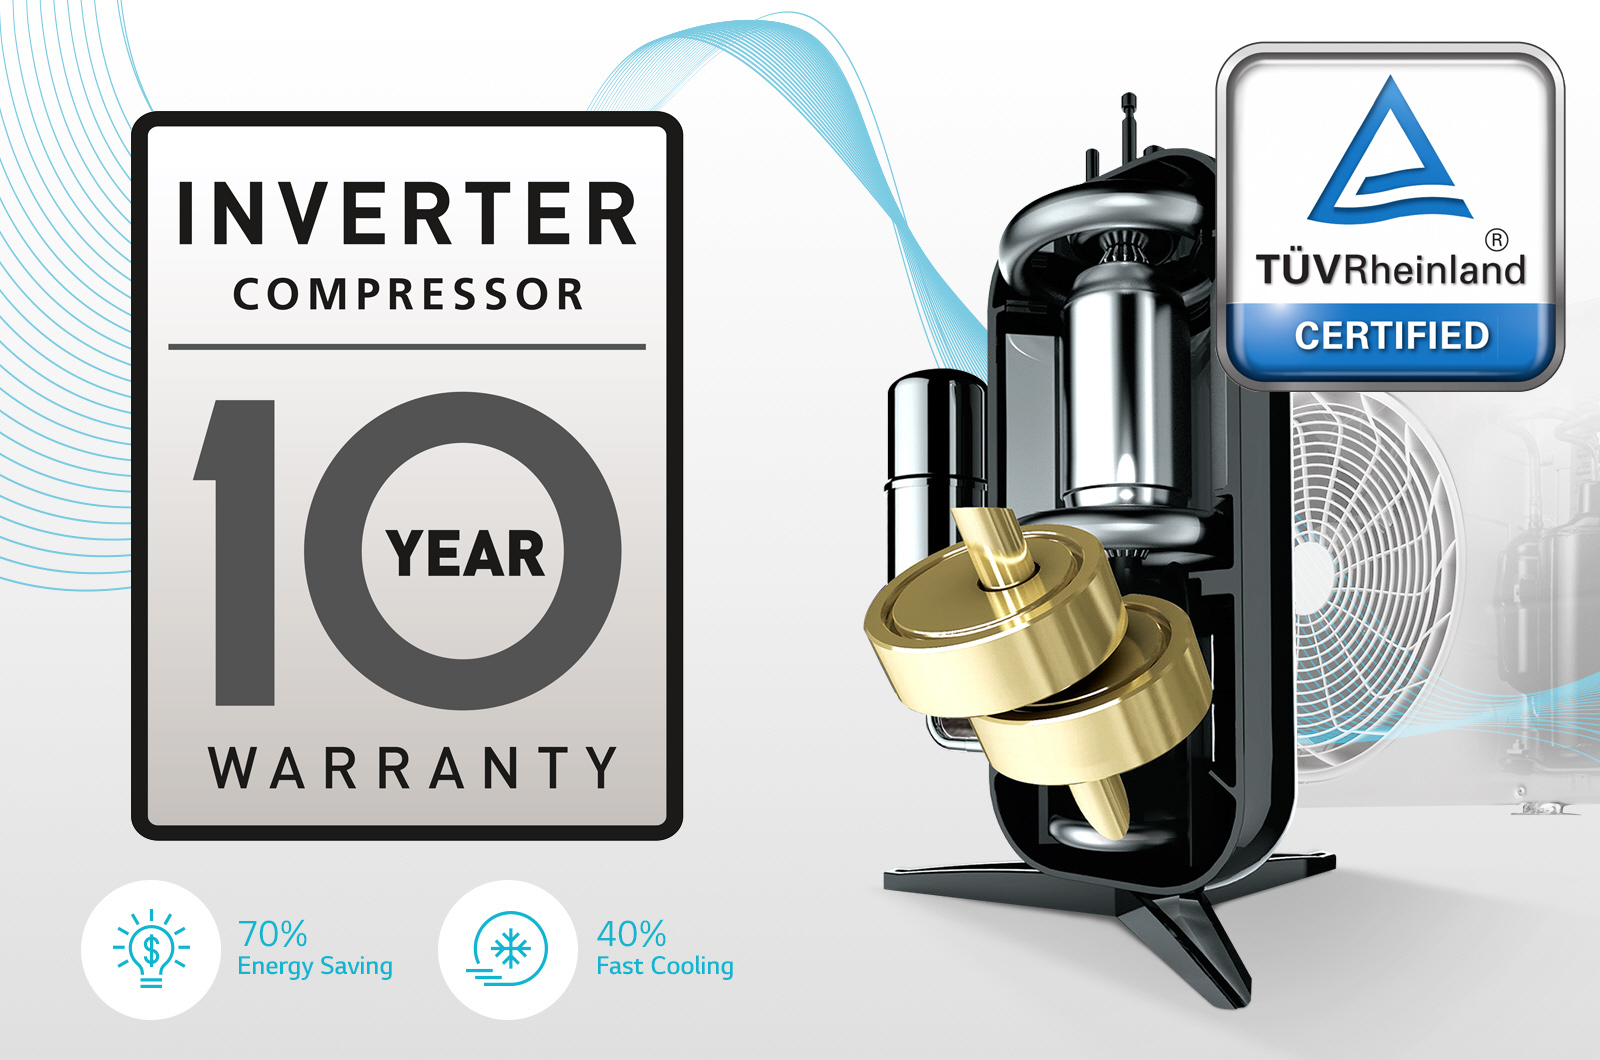 1lg_twin_rotary_compressor10-year_tuv-tested